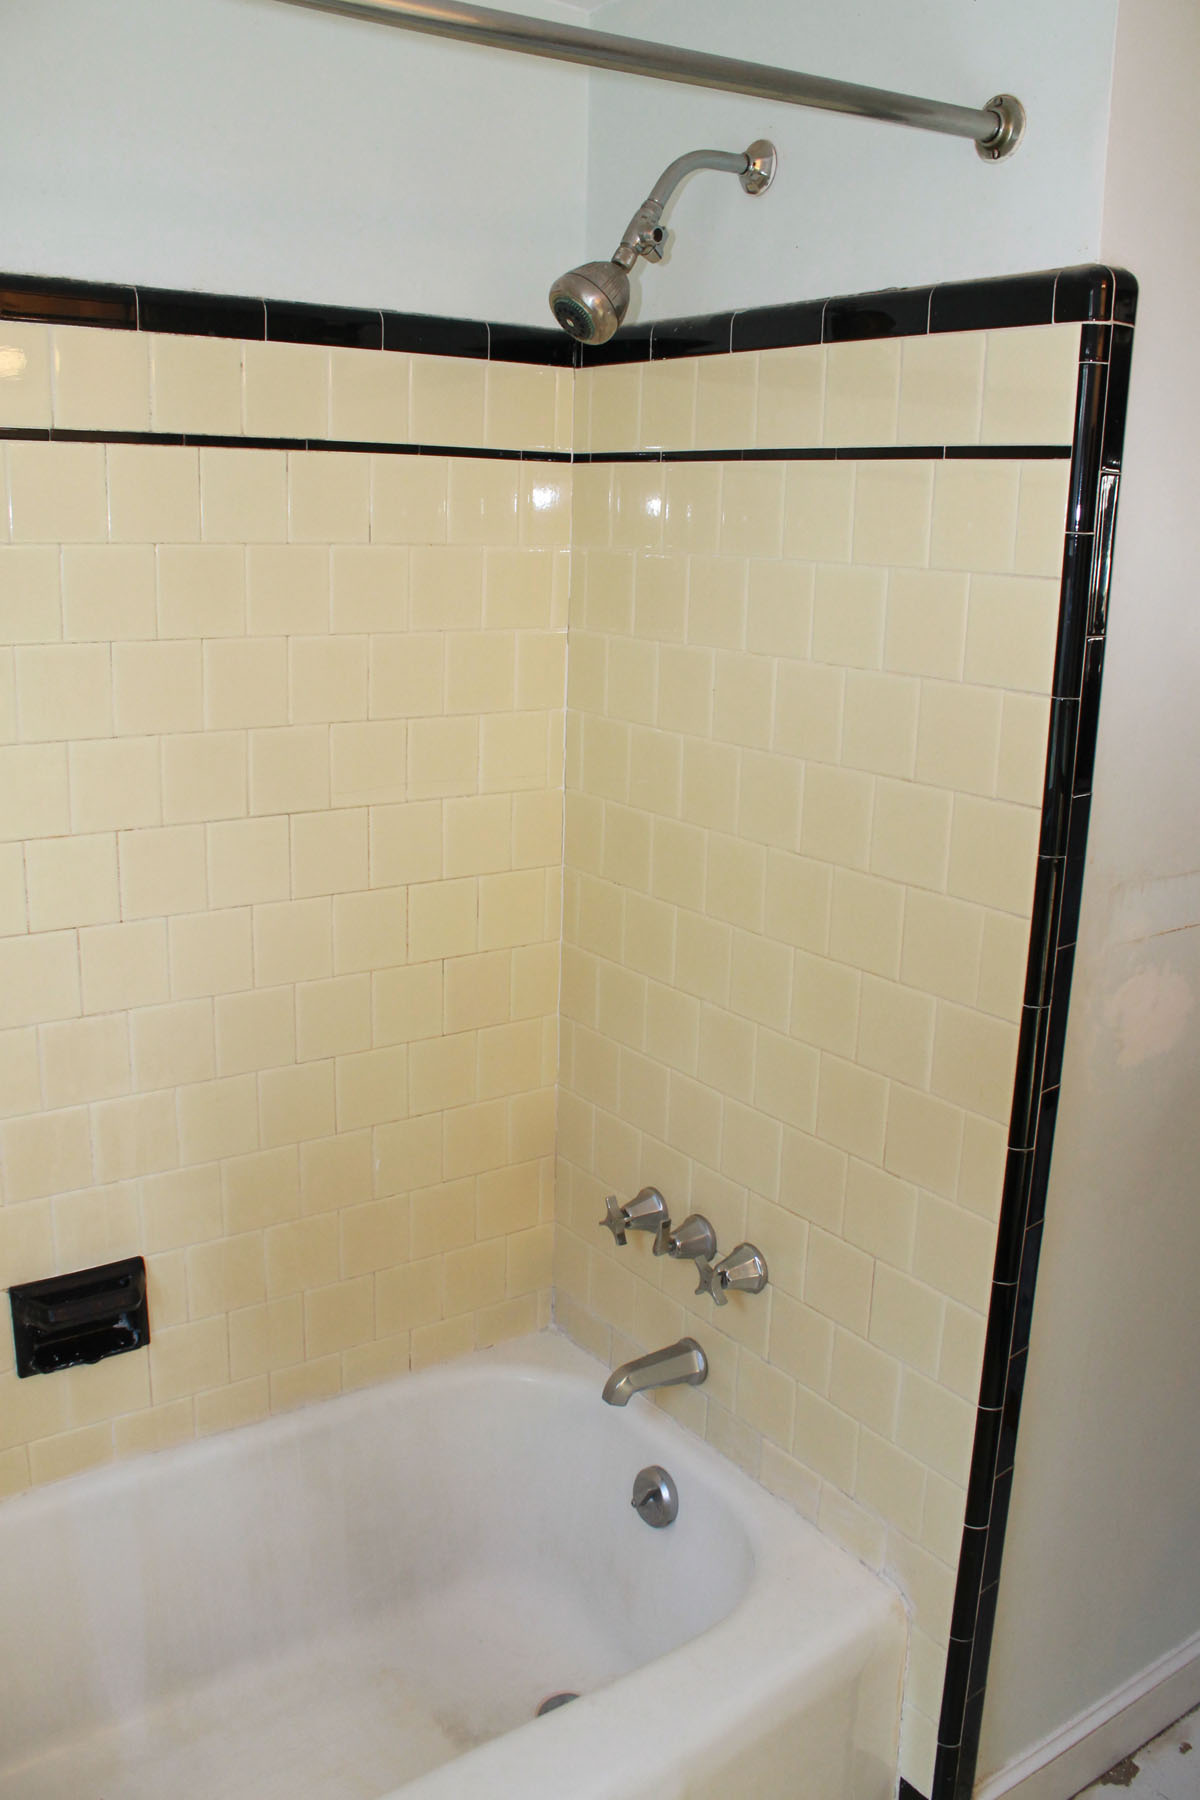 Tub And Tile Reglazing Bay State Refinishing Remodeling - Reglazing bathroom tile before and after